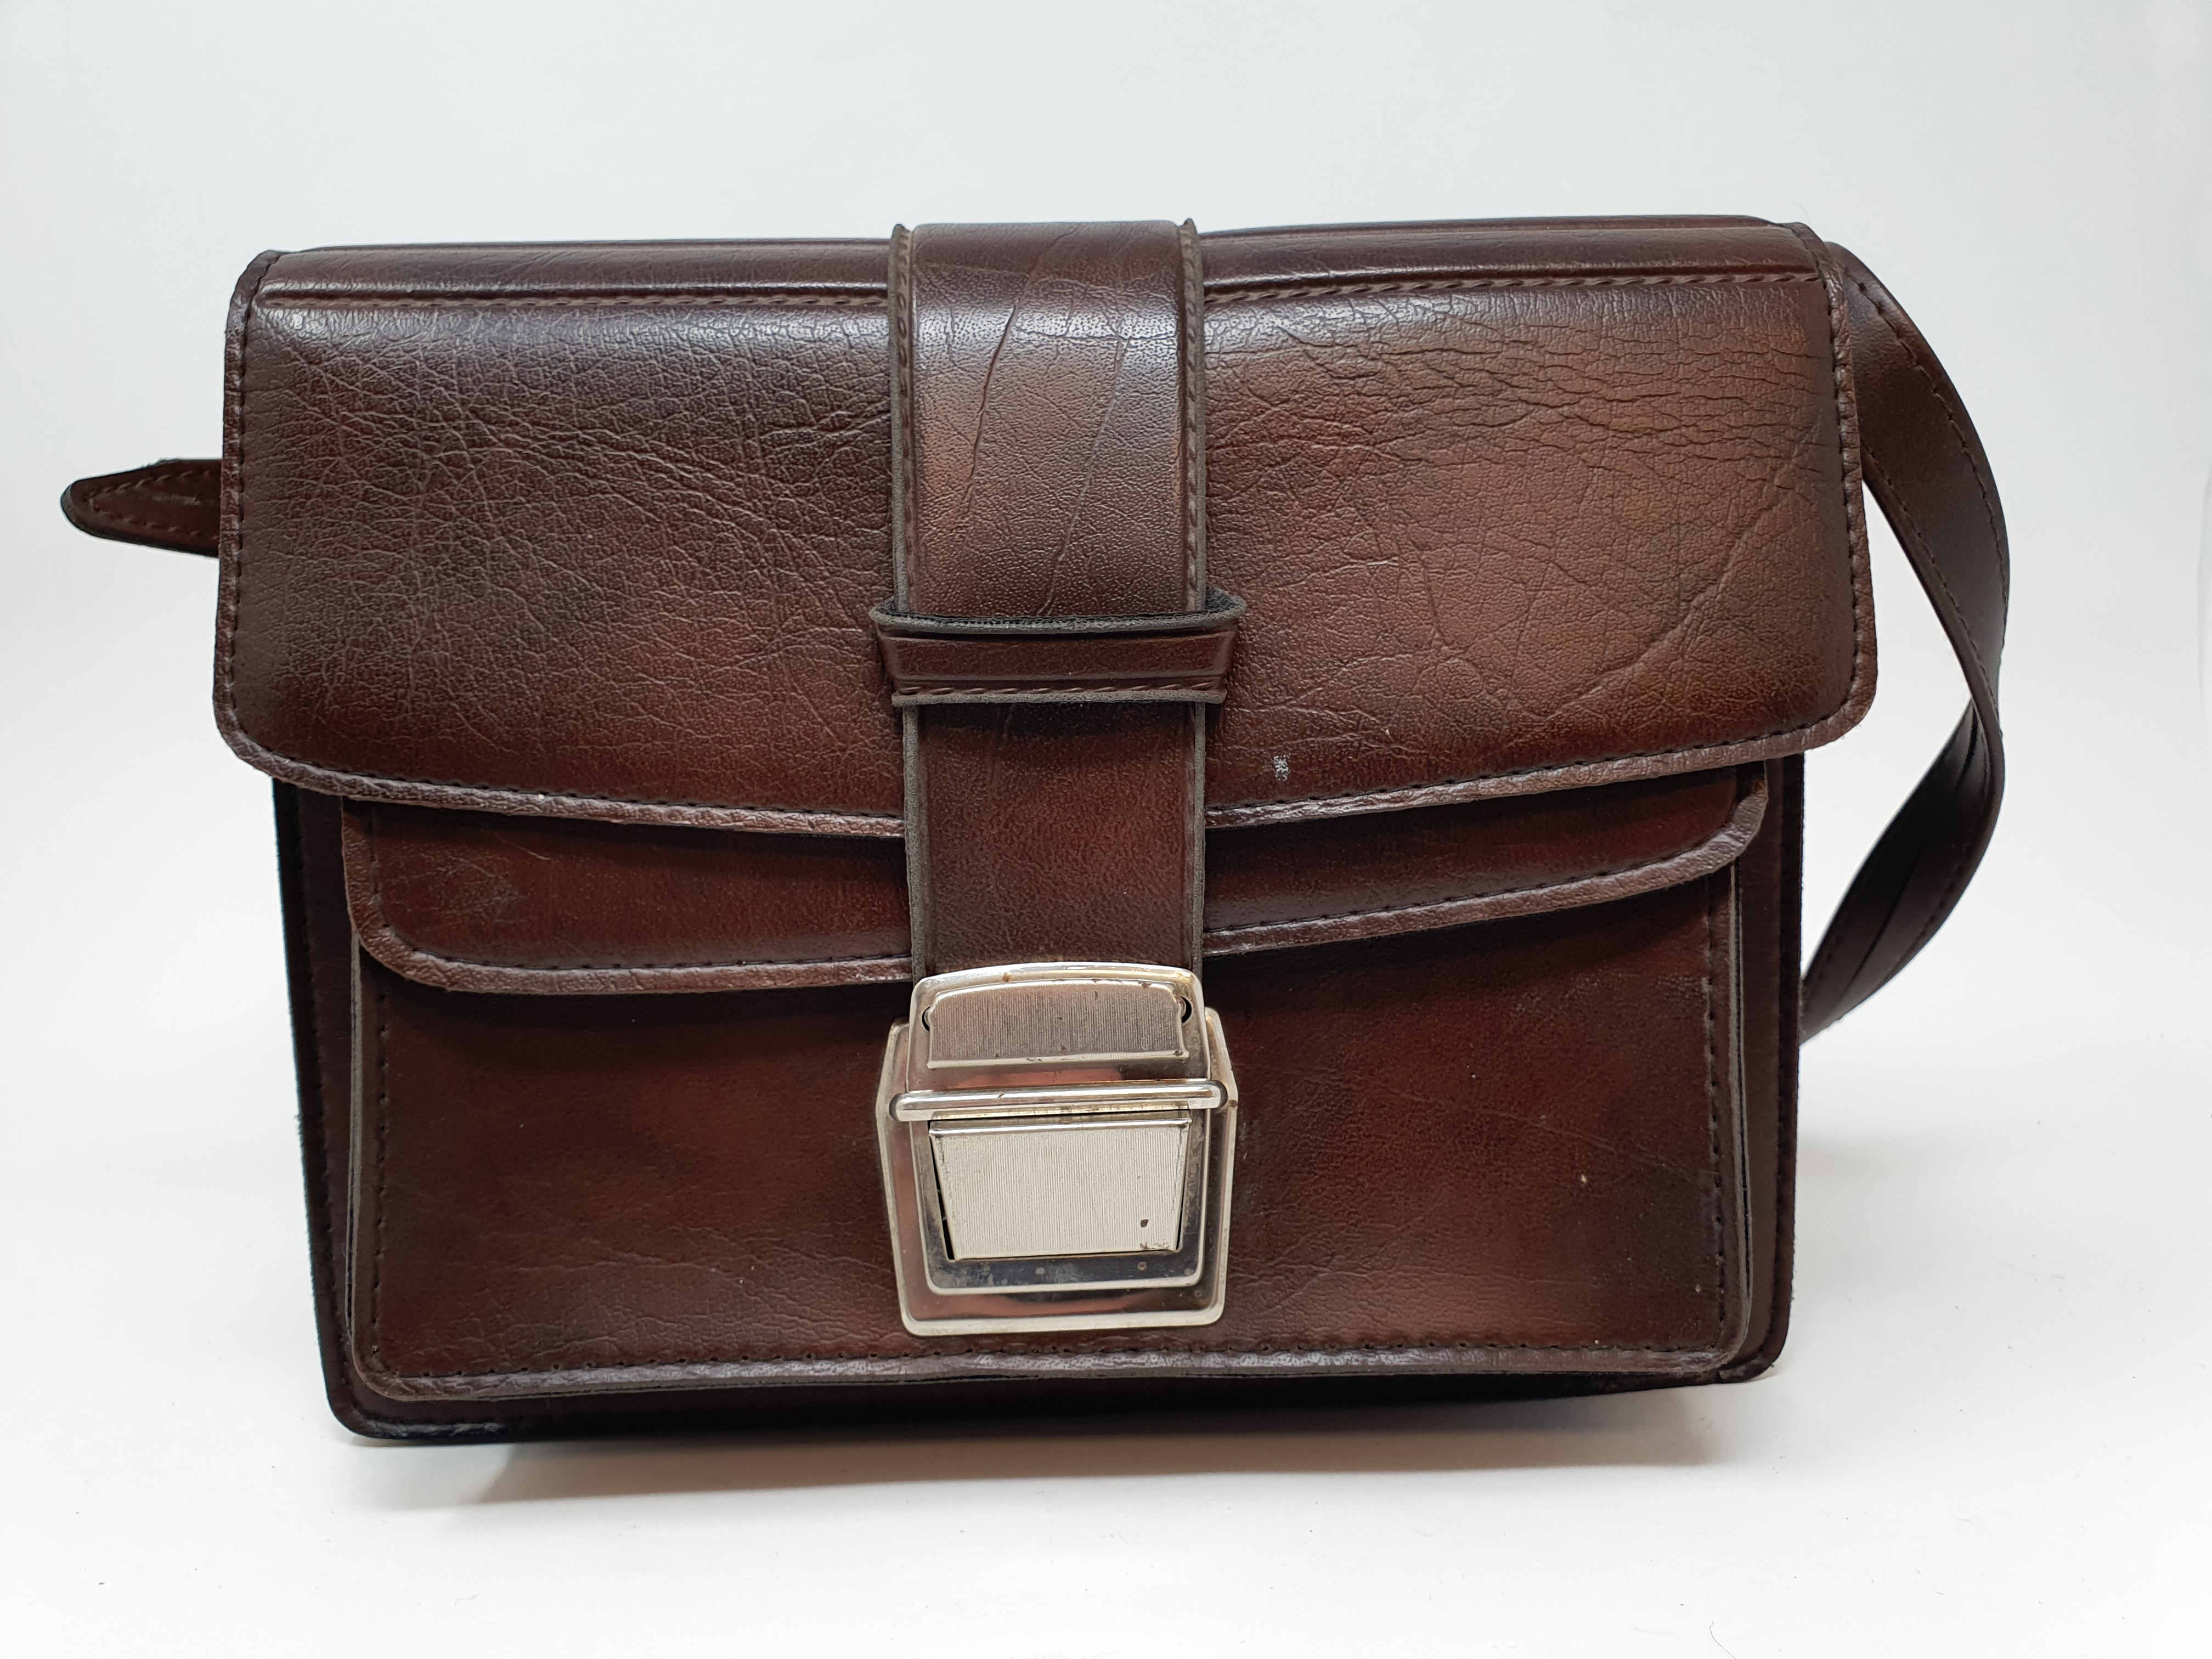 A Reid & Sigrist ltd camera, serial number P2750, with leather outer case, lens, and accessories - Image 7 of 7